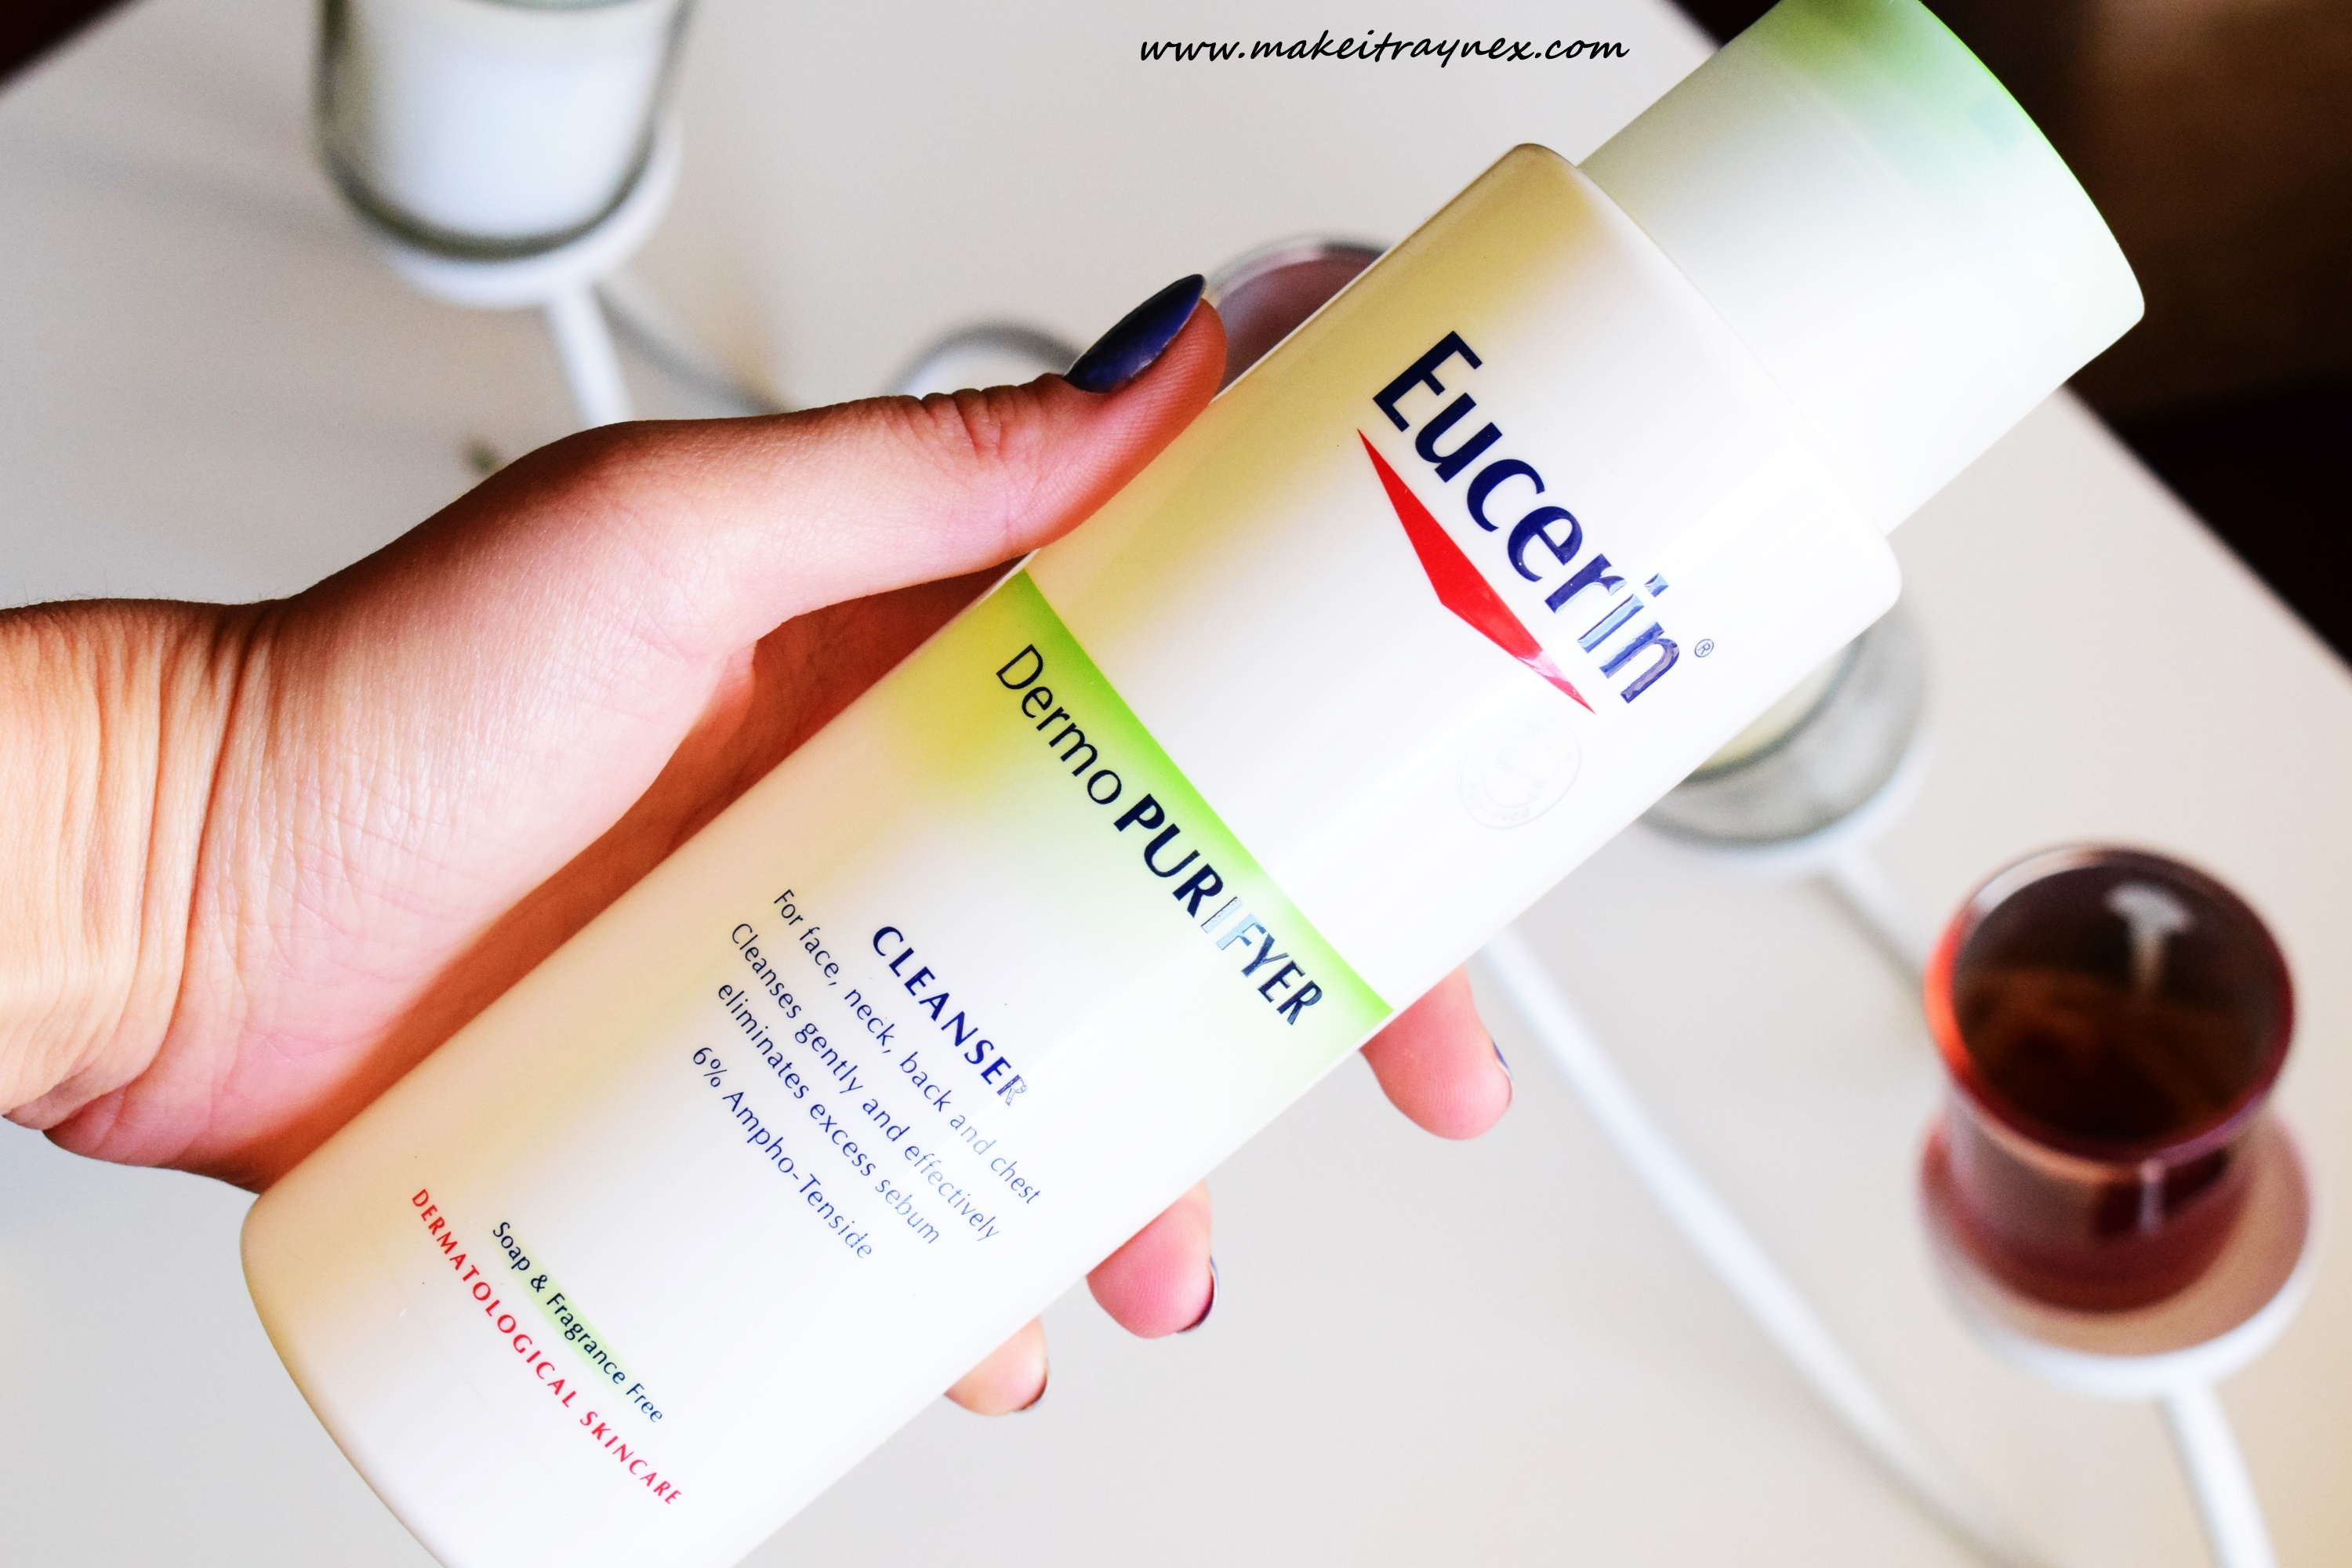 DermoPURIFYER Cleansing Gel from Eucerin {REVIEW}